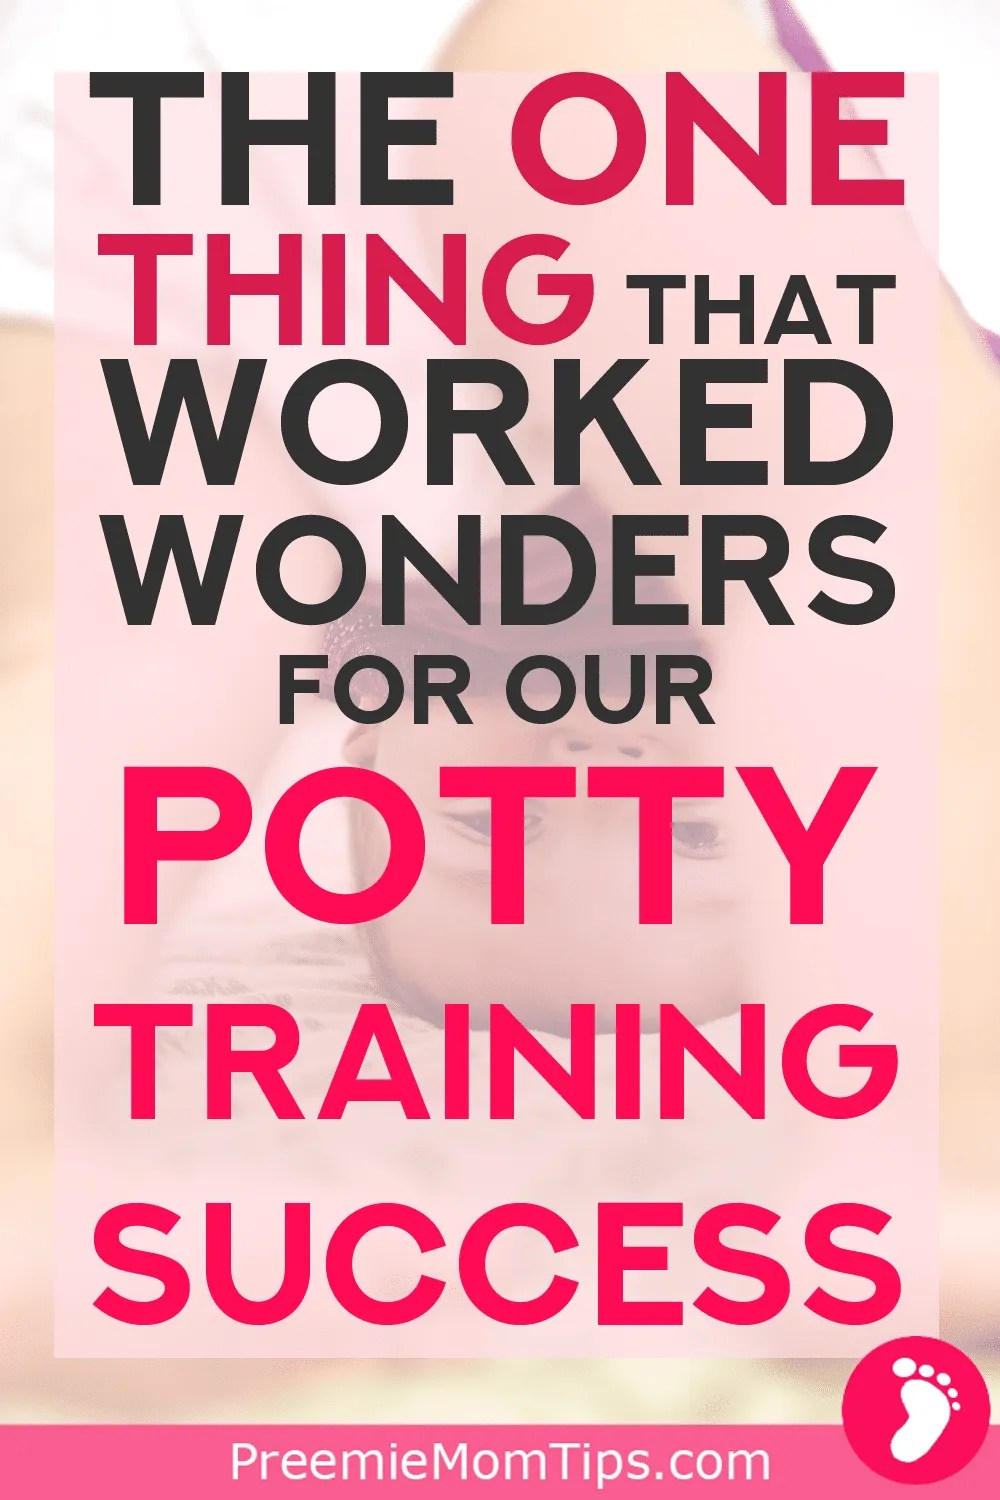 Potty training your toddler is a challenge in a whole new level! Out of all the things I tried as a first time mom, here is the one that worked the best!